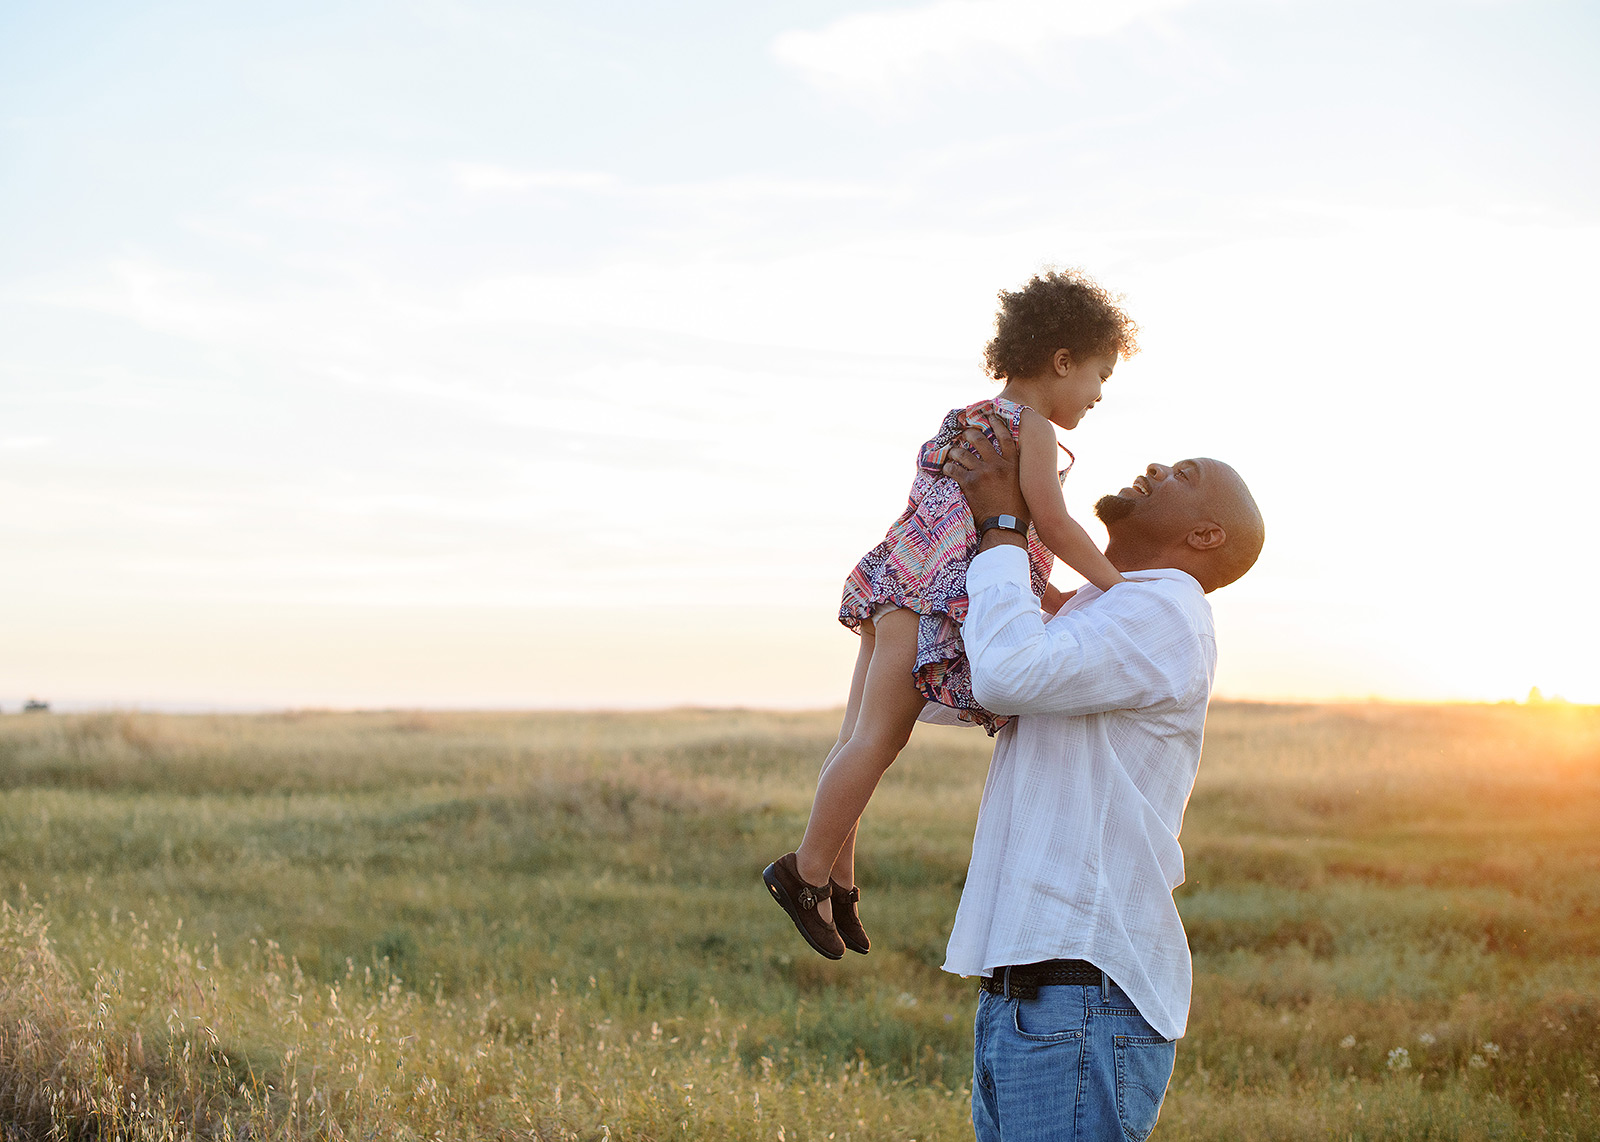 father playing with daughter in a field